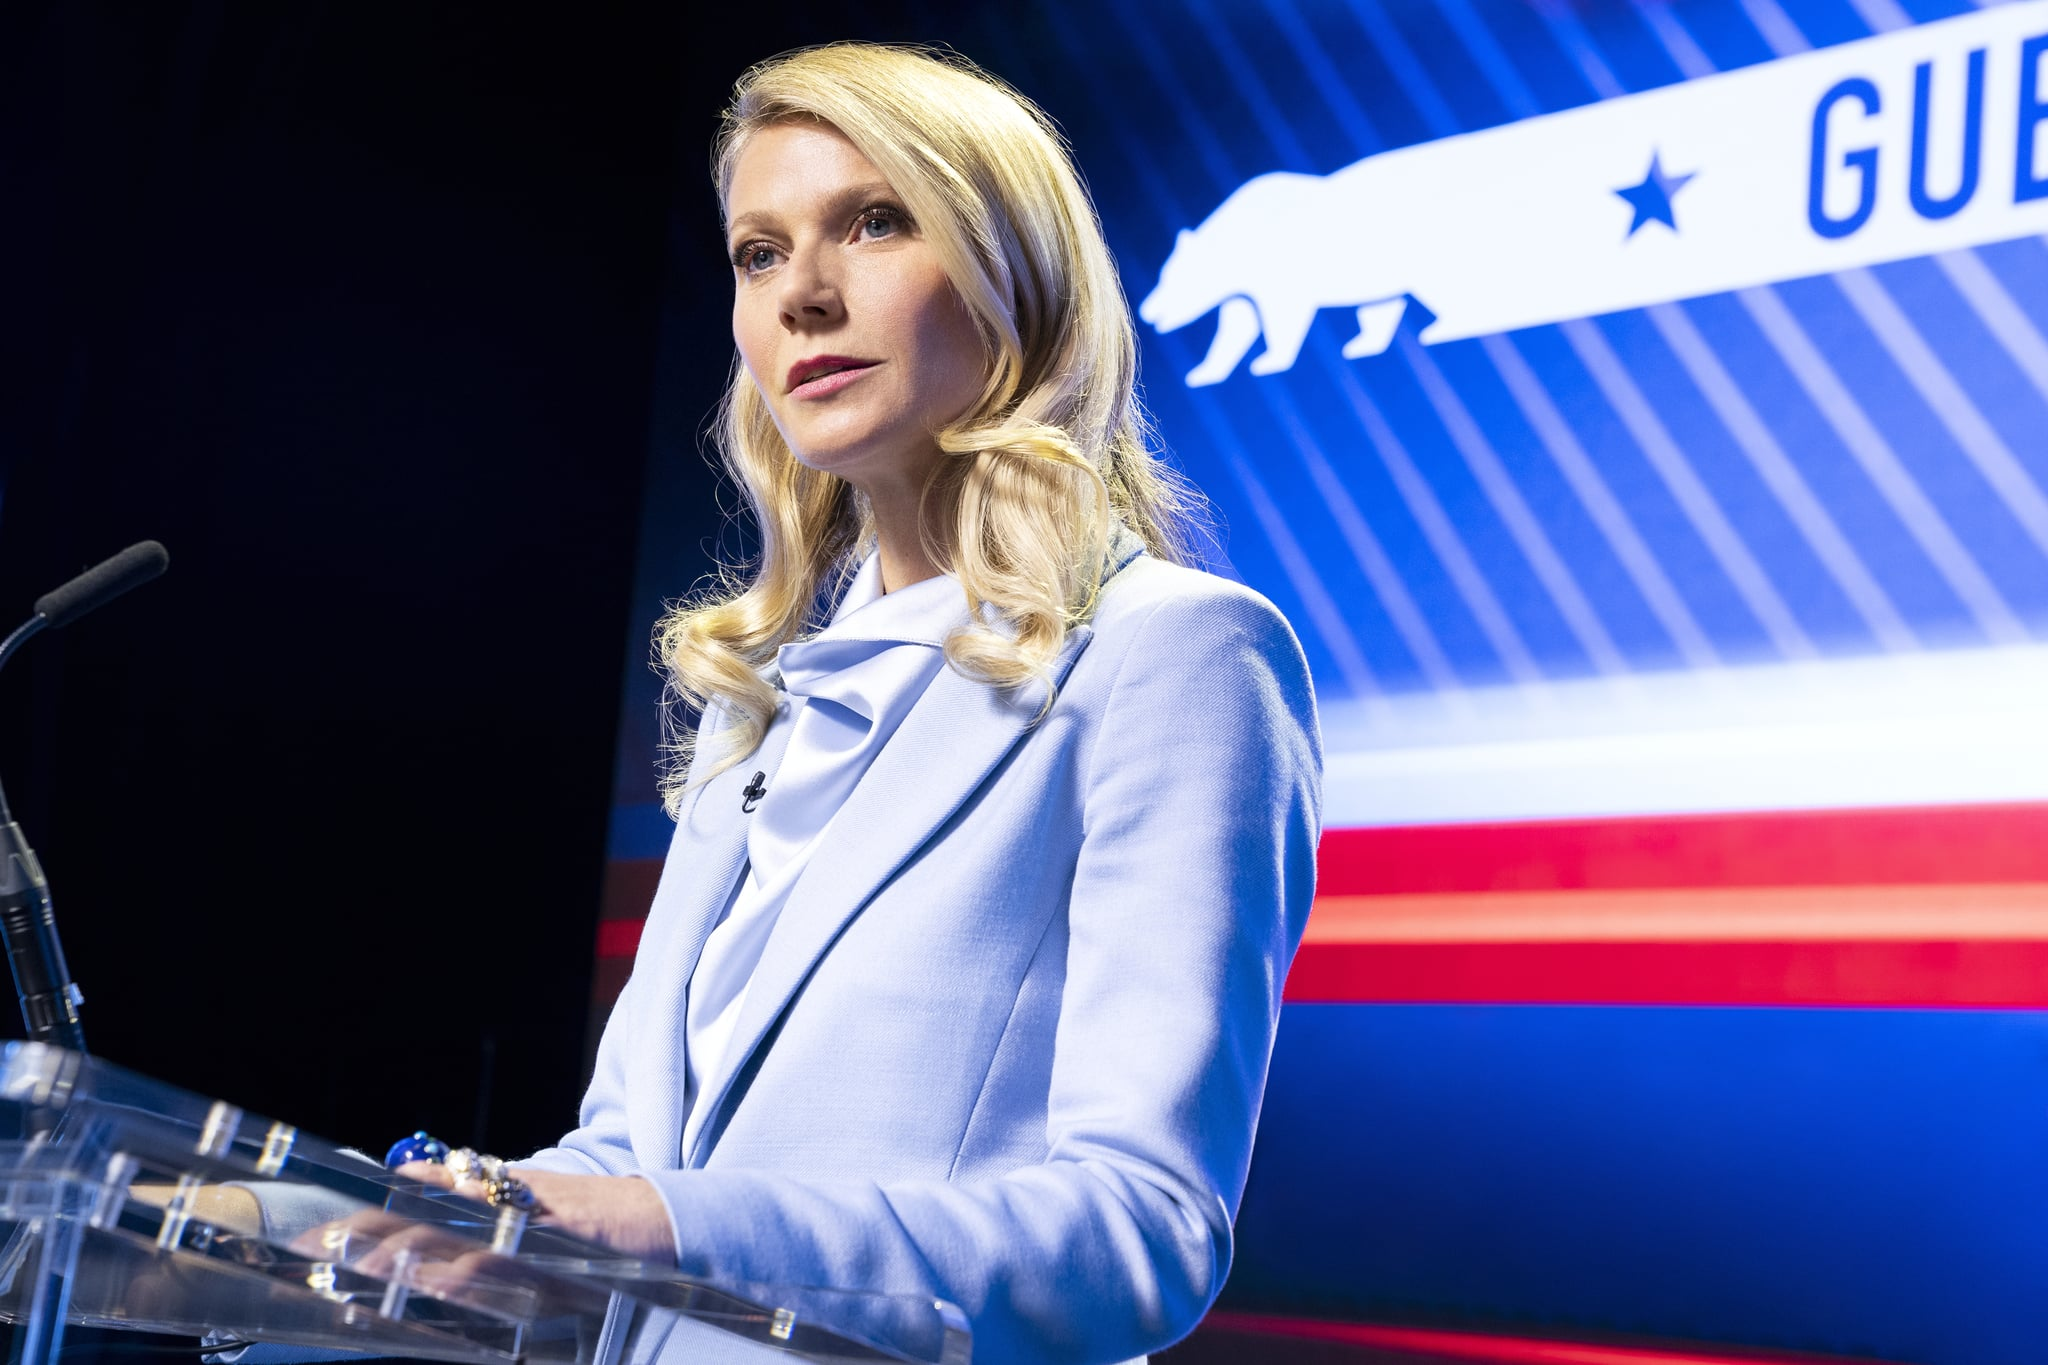 THE POLITICIAN GWYNETH PALTROW as GEORGINA HOBART in episode 201 of THE POLITICIAN Cr. NICOLE RIVELLI/NETFLIX  2020